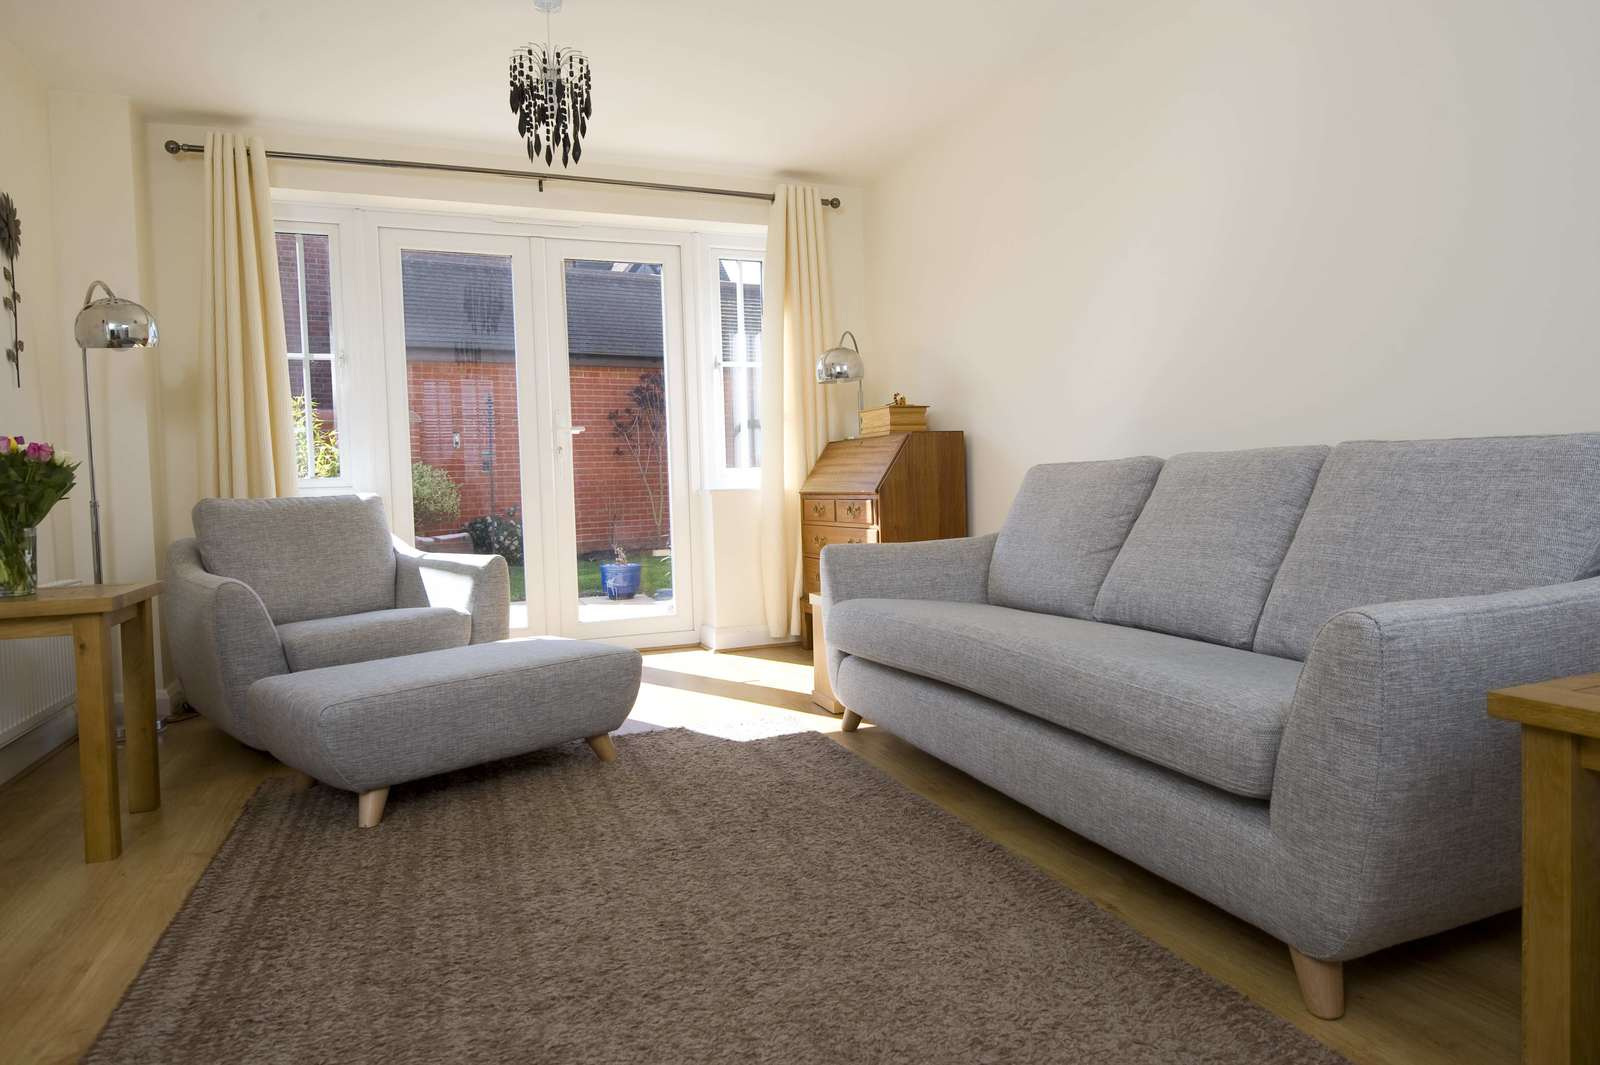 3 bed house for sale in Woodpecker Close, Great Barford 7